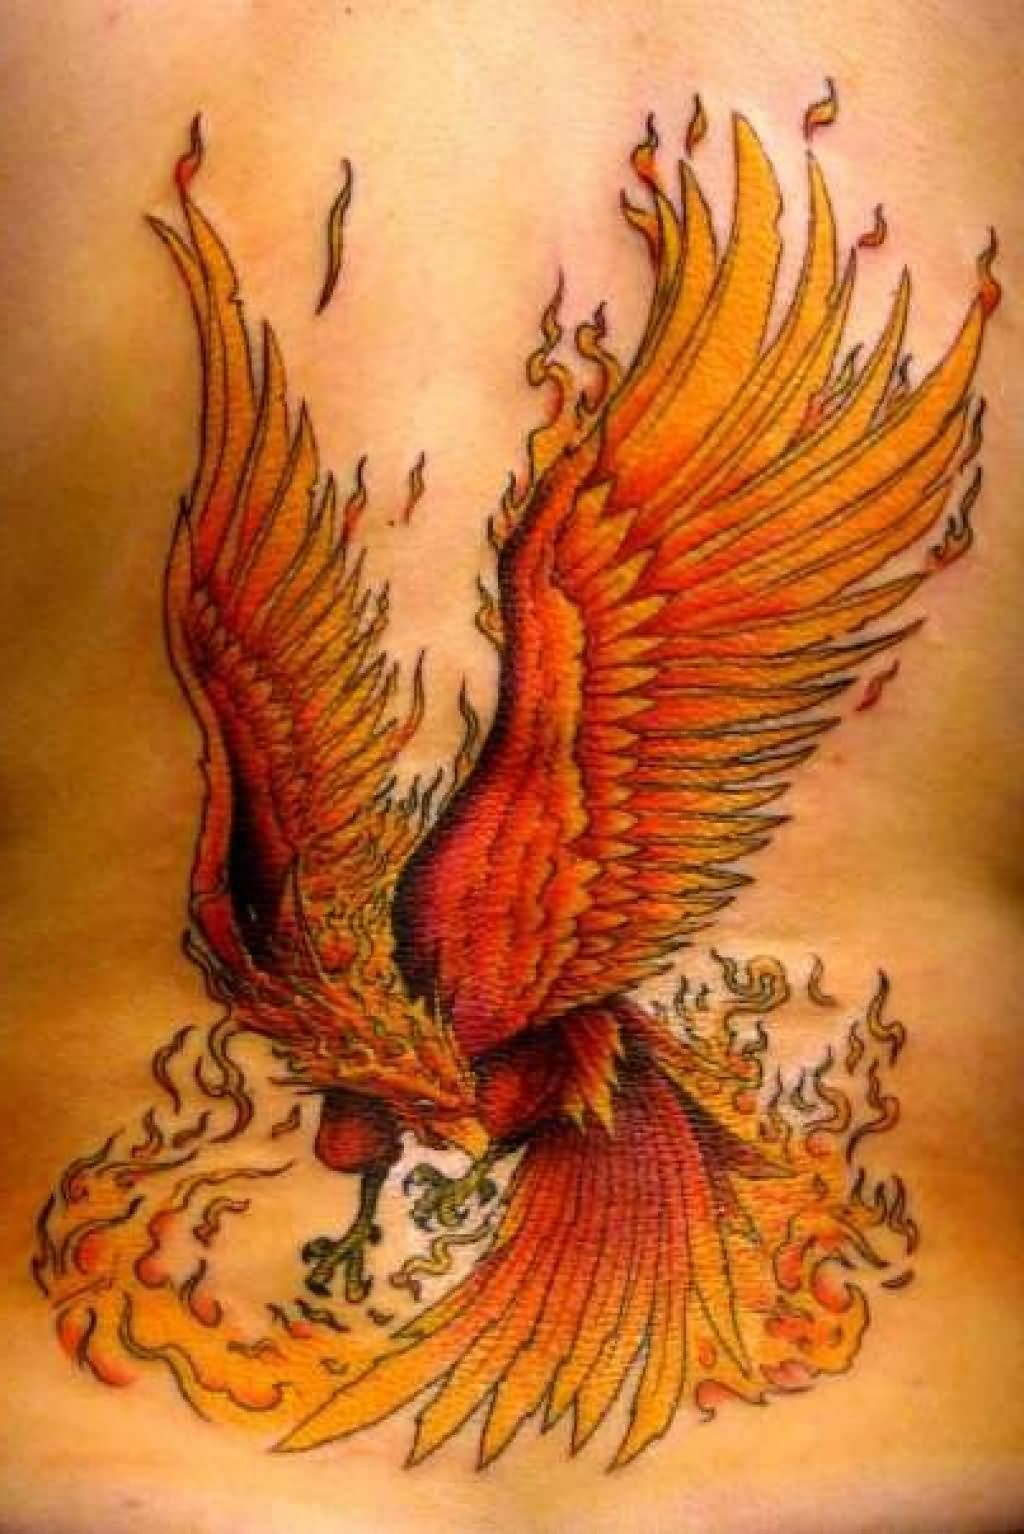 Colorful phoenix tattoo designs - Color Flaming Phoenix Tattoo On Back